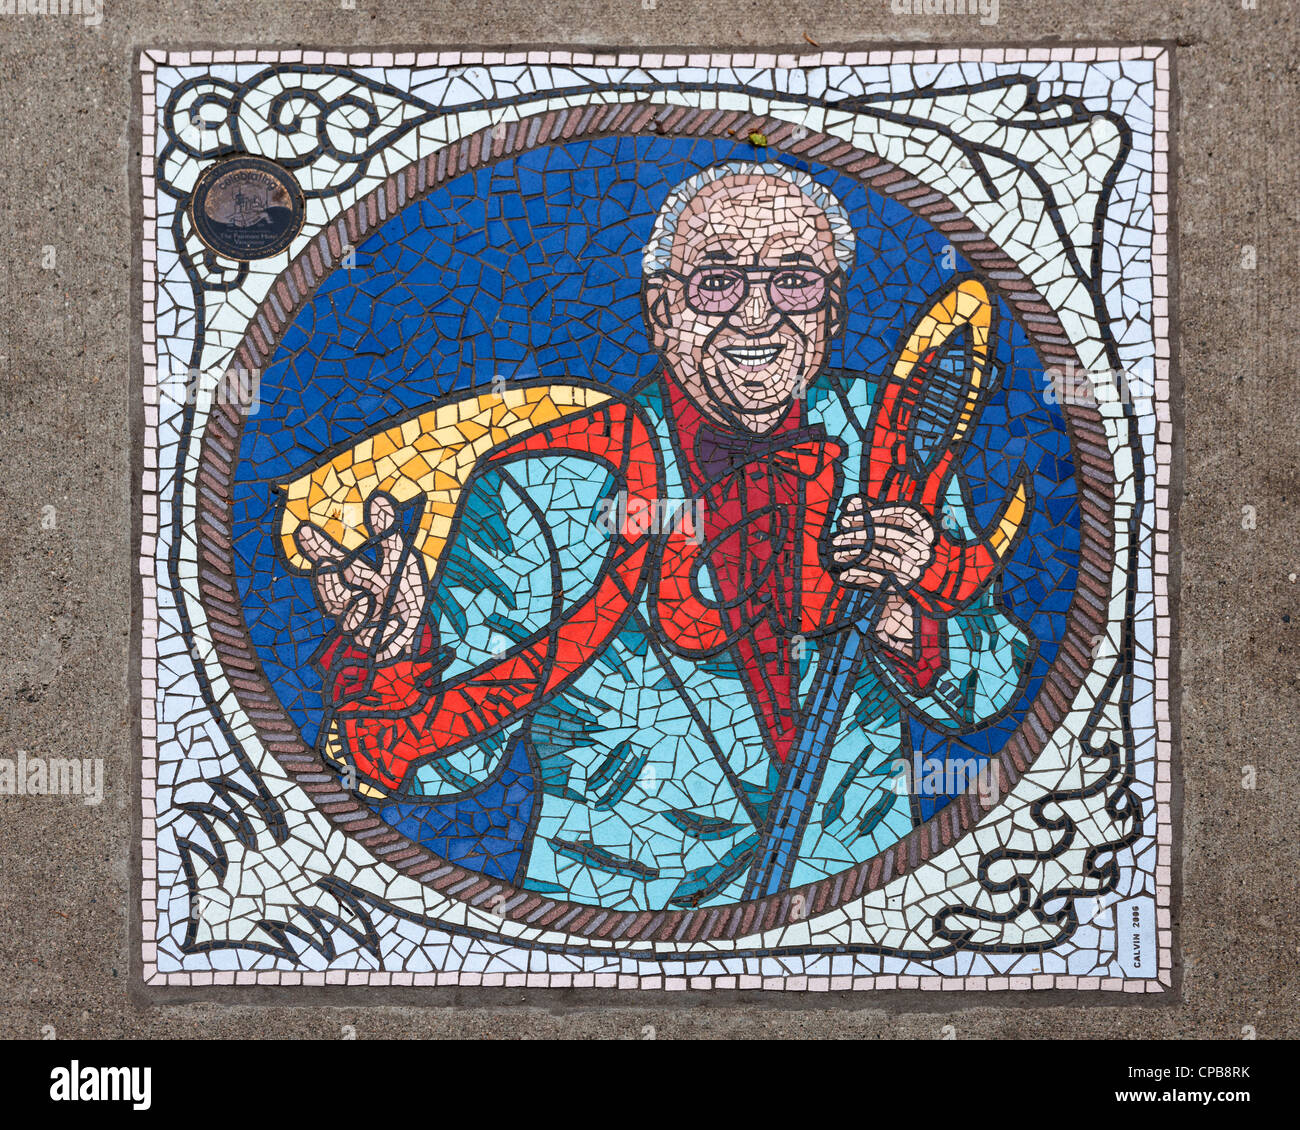 Swing of Things mosaic, Vancouver - Stock Image